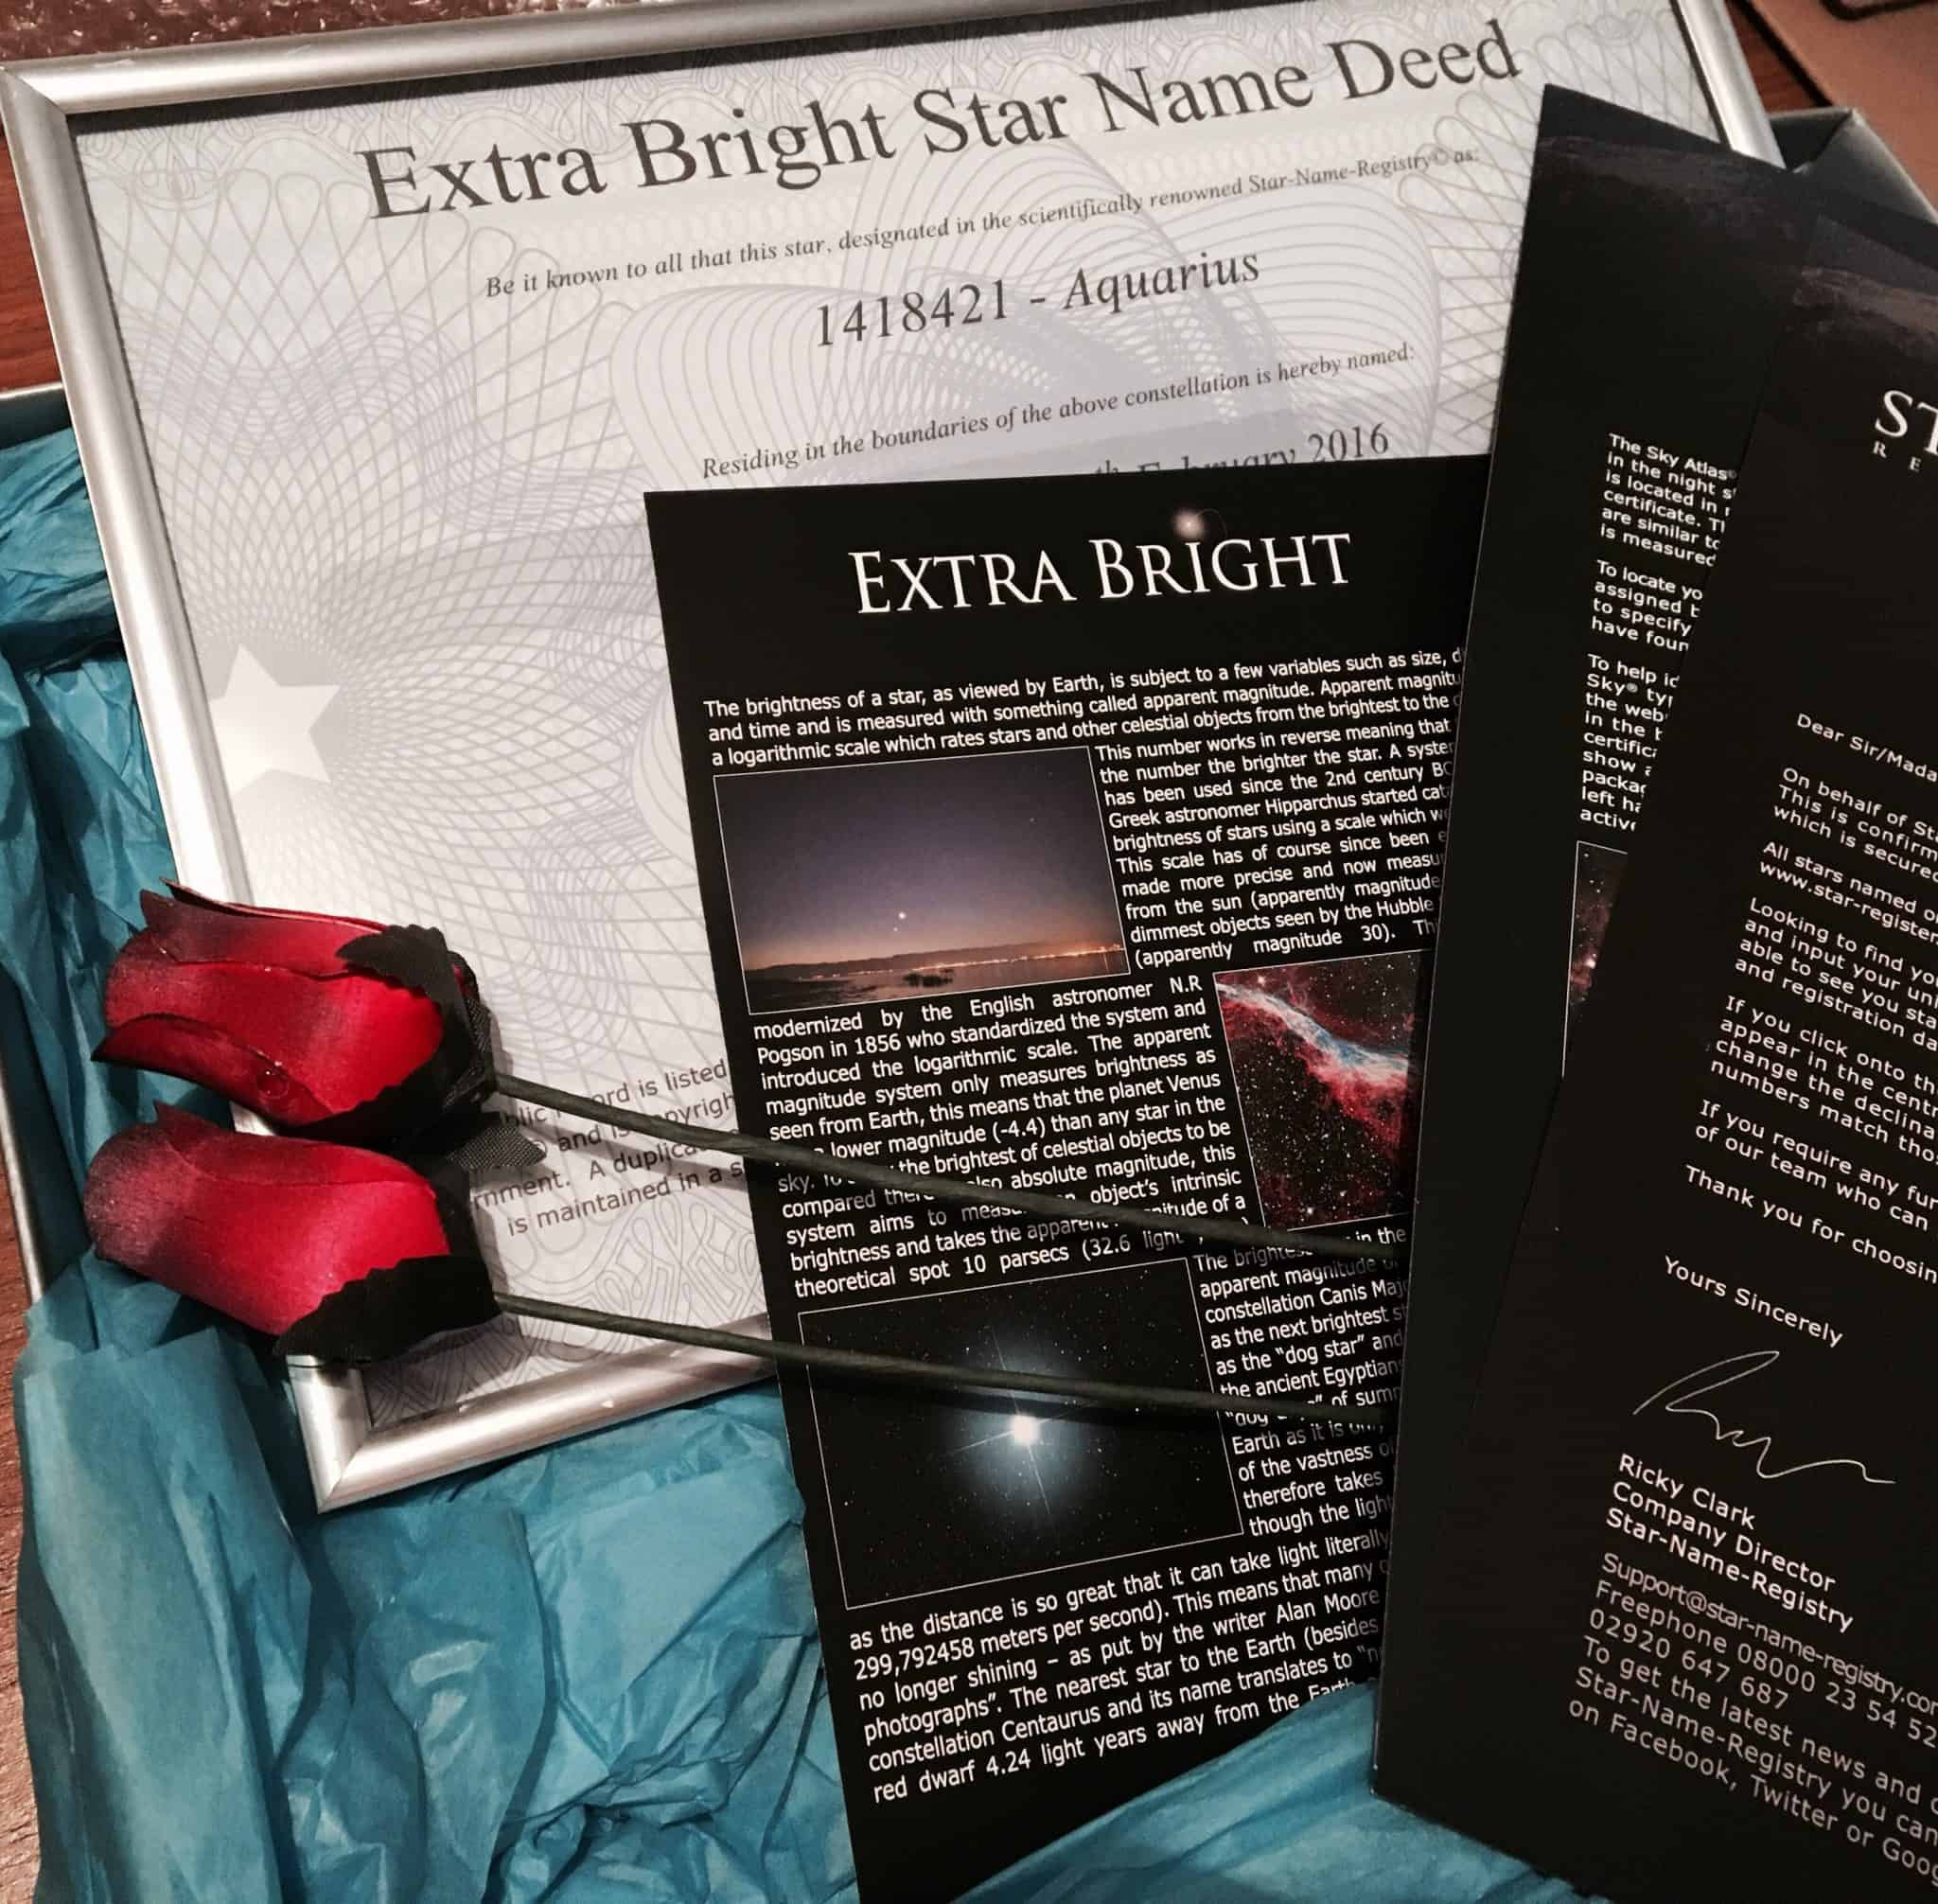 Extra Bright Star Name Deed